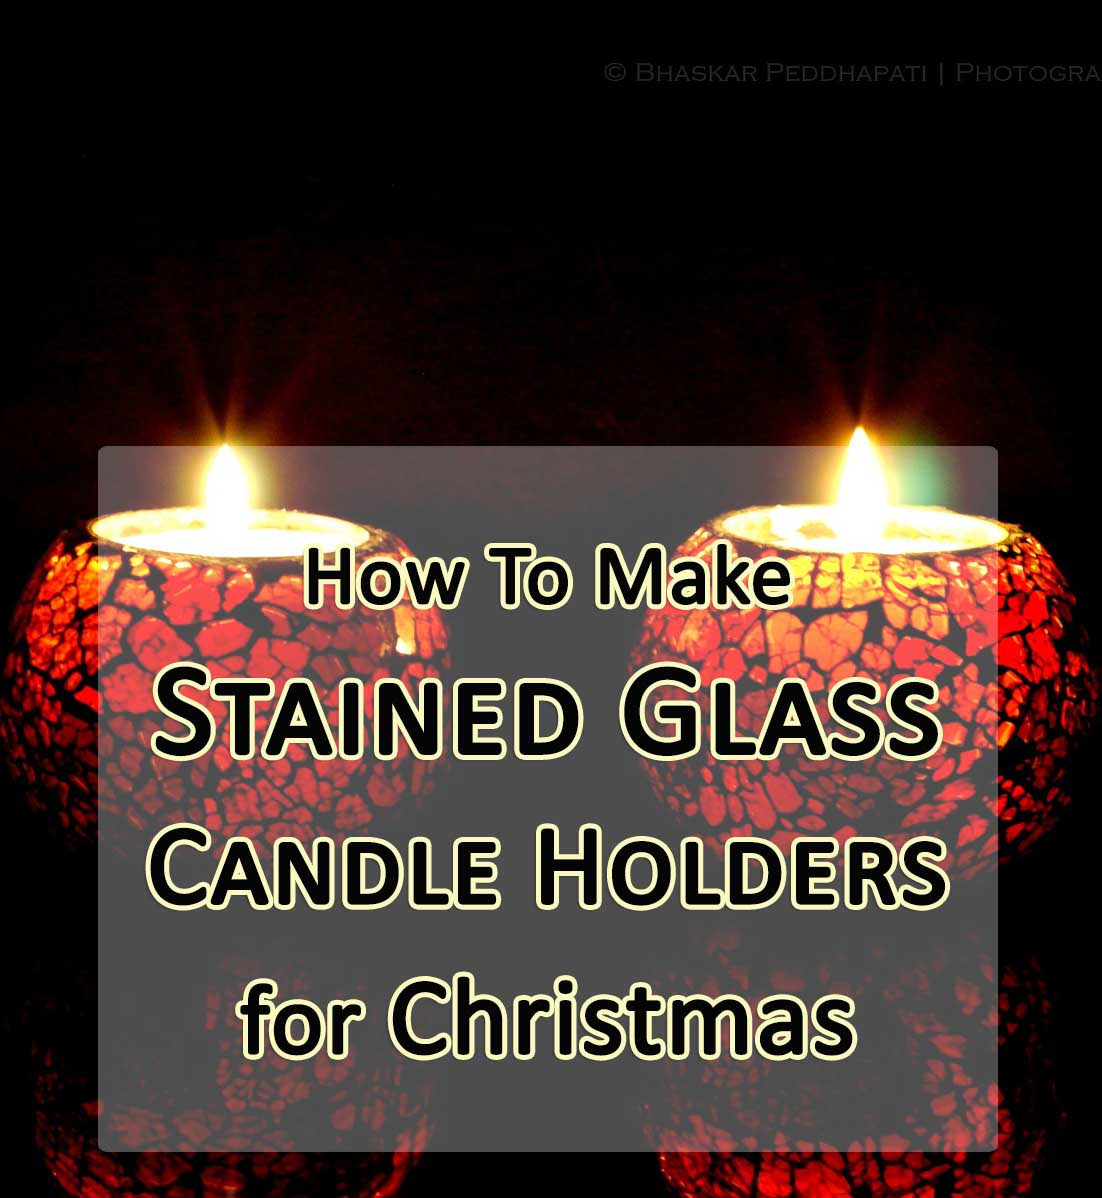 how to make stained glass candle holders for christmas